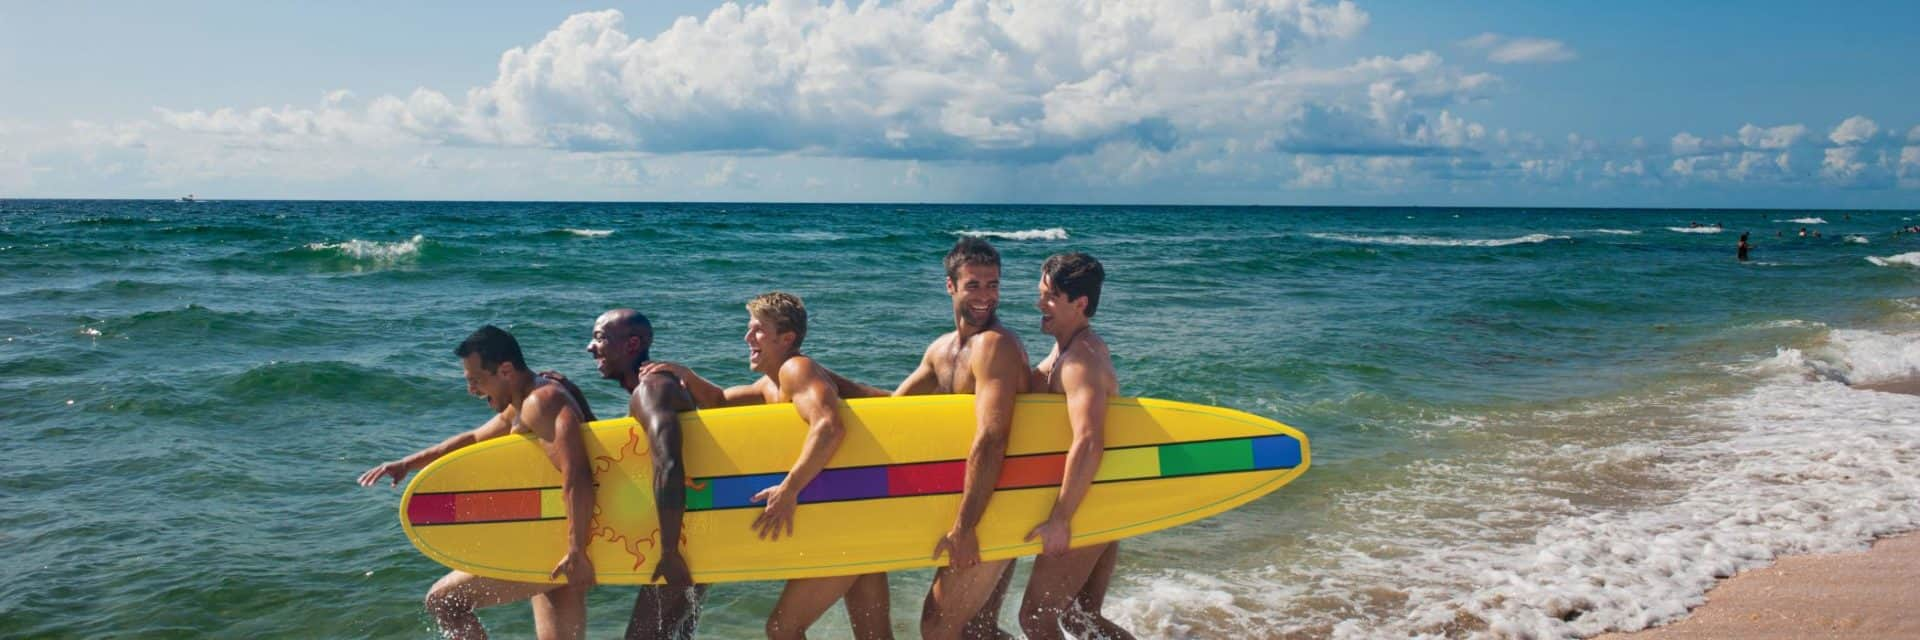 Fort Lauderdale gay vacations